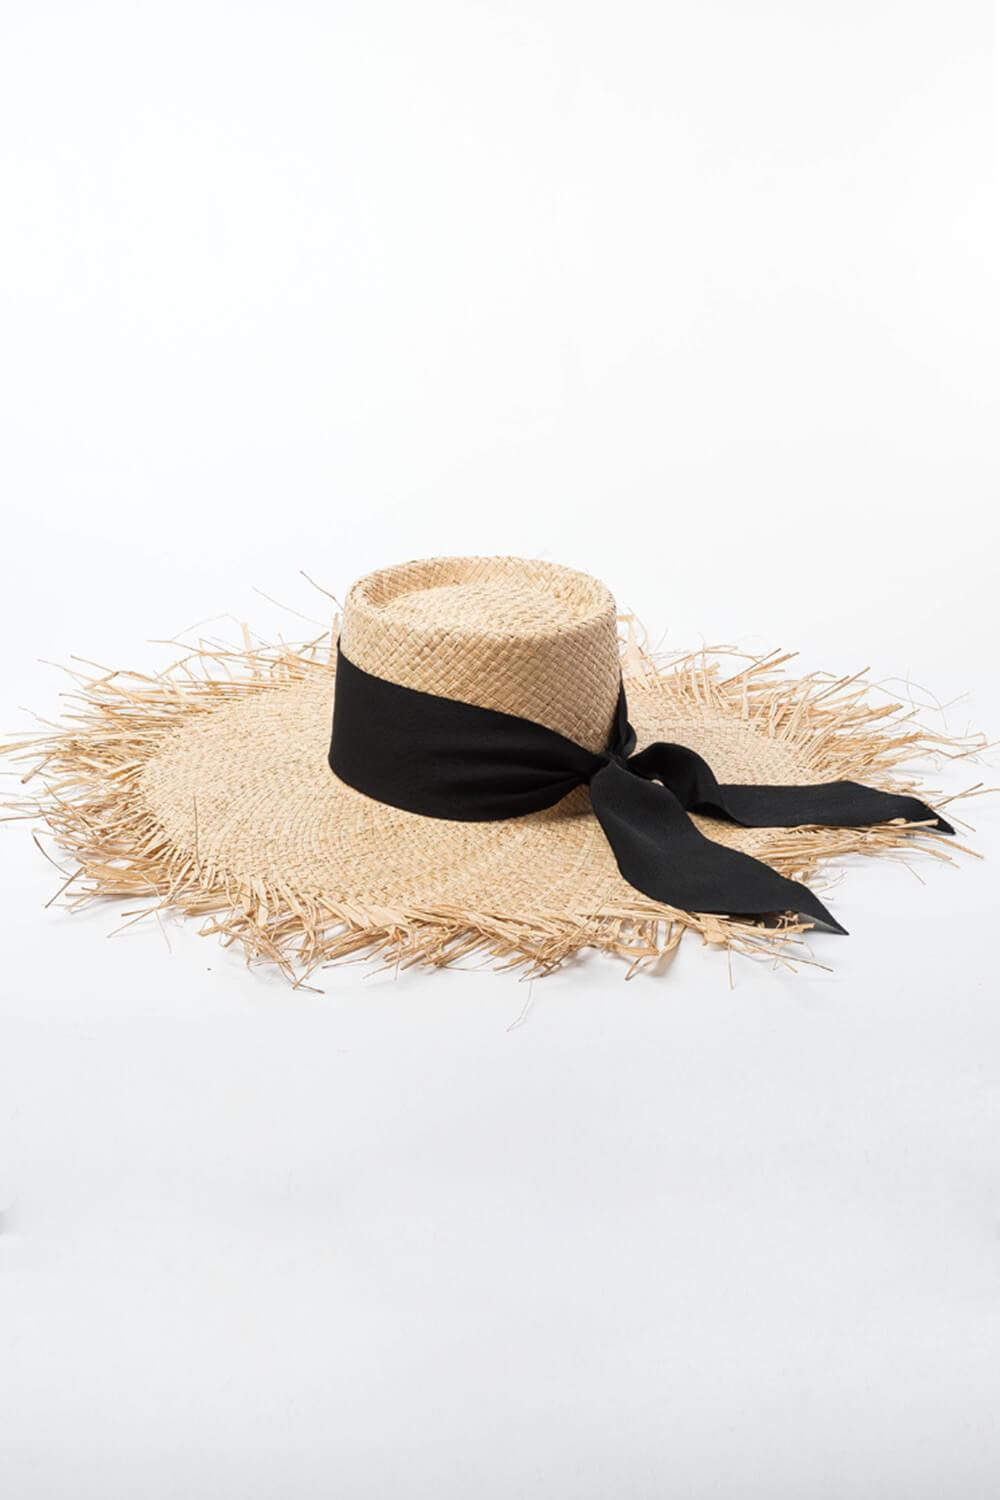 Raffia Straw Open Weave Flat Boater With Bow Ribbon Trim